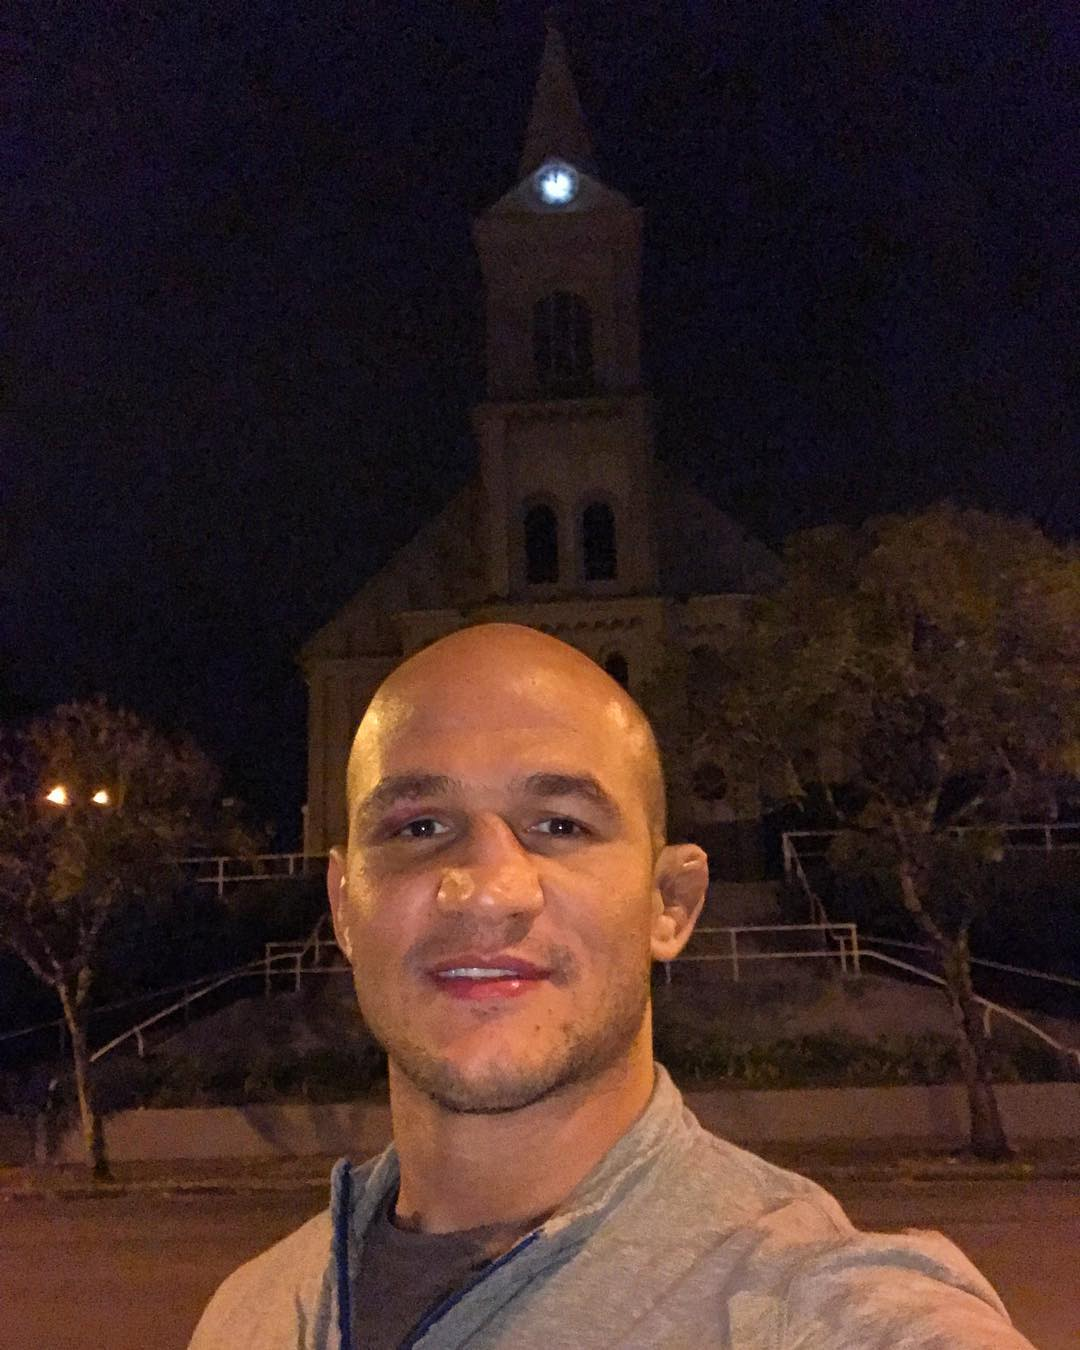 Junior Dos Santos Instagram username